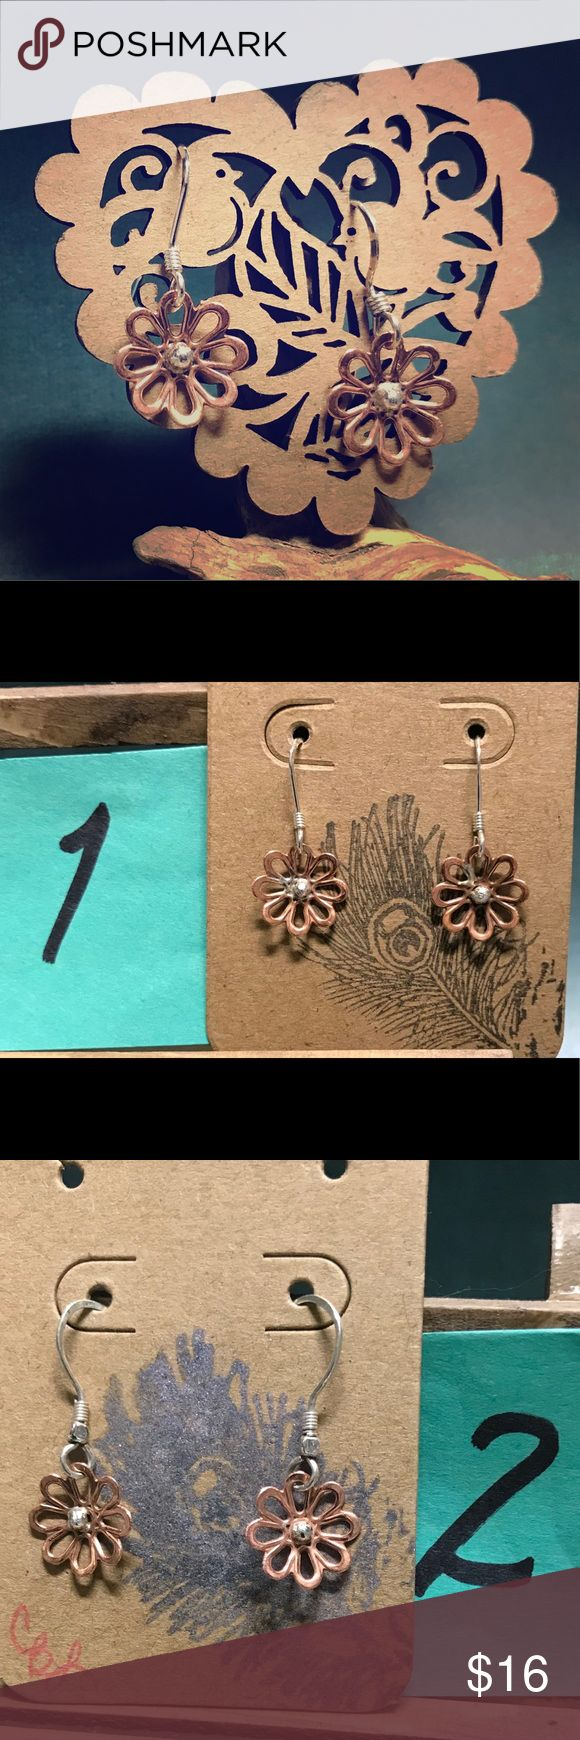 Delicate copper & sterling flower earrings [CBL] Sweet little copper and sterling silver flower 🌸 earrings! (So cute I kept a pair for myself 😊 – something that I rarely do!) Delicate sterling silver ear wires (from USA jewelry supplier, stamped 925 on flat portion or actual earwire). Great 🎁- comes with box. Indicate which pair you'd like. These are handmade so each will have slight variations. Just comment below which # you would like.  ✨Discount for all 3...otherwise, price firm unless…